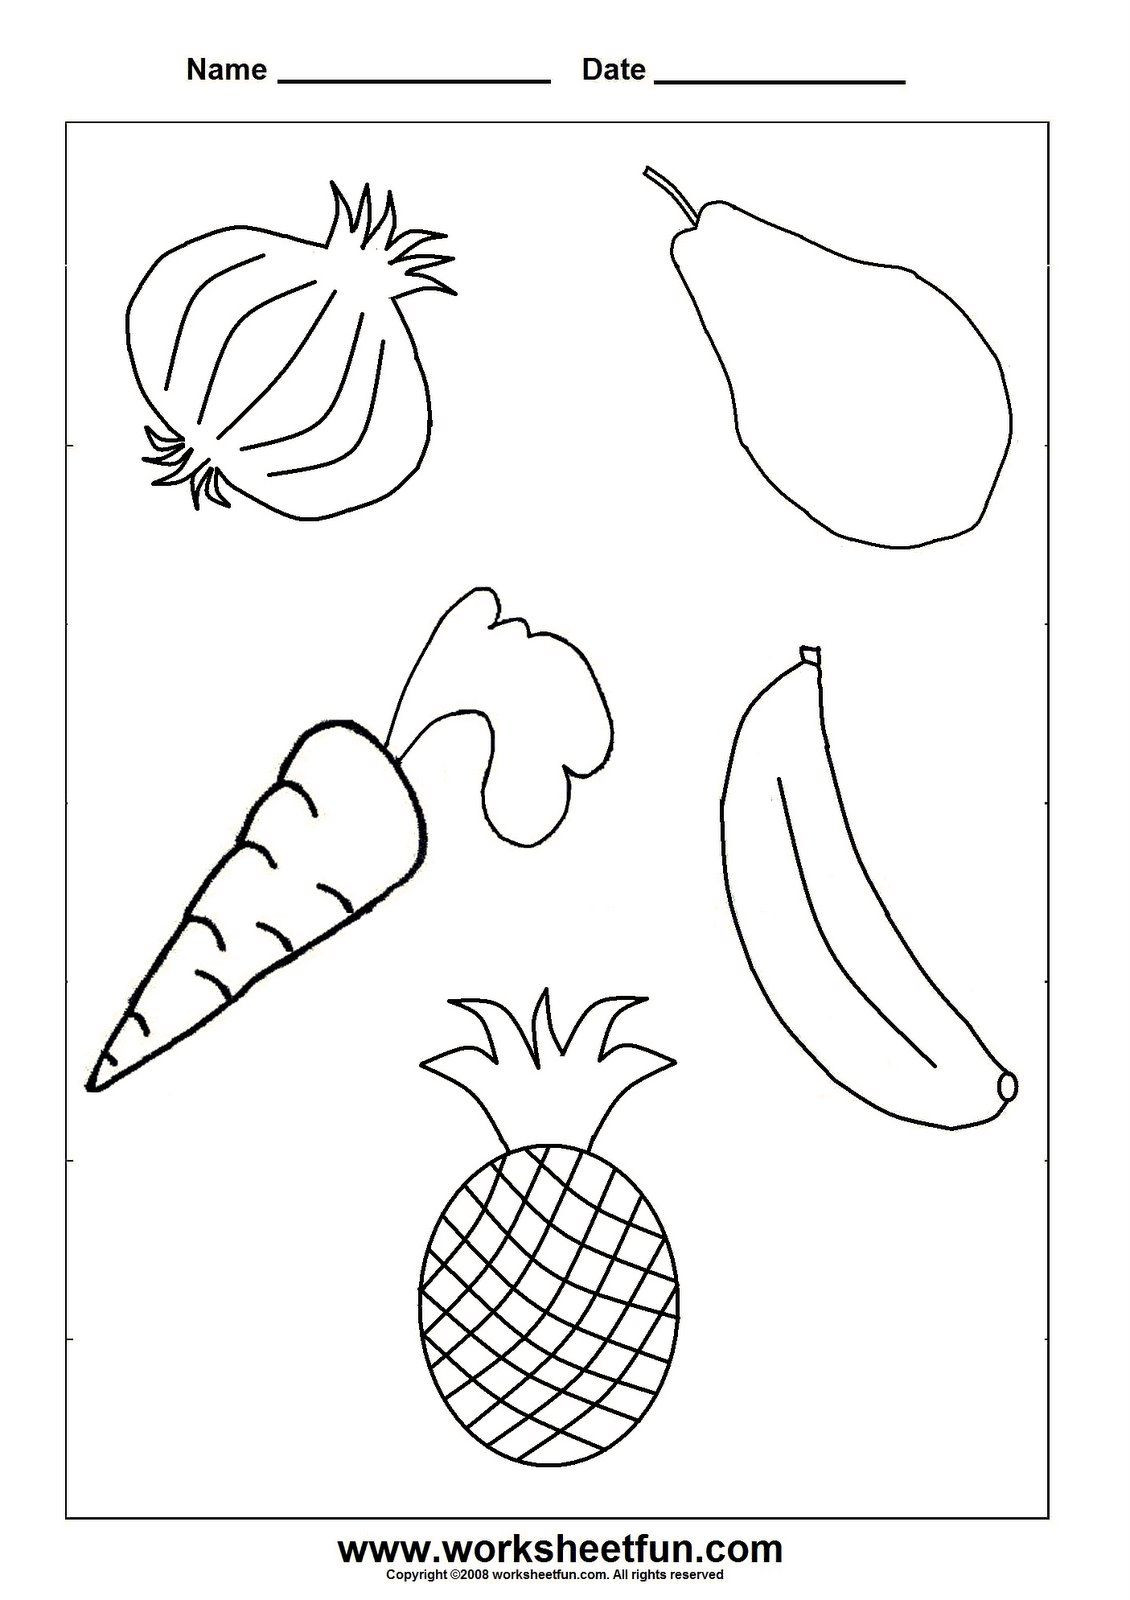 Vegetable Worksheets for Preschool Тема My Food садочок